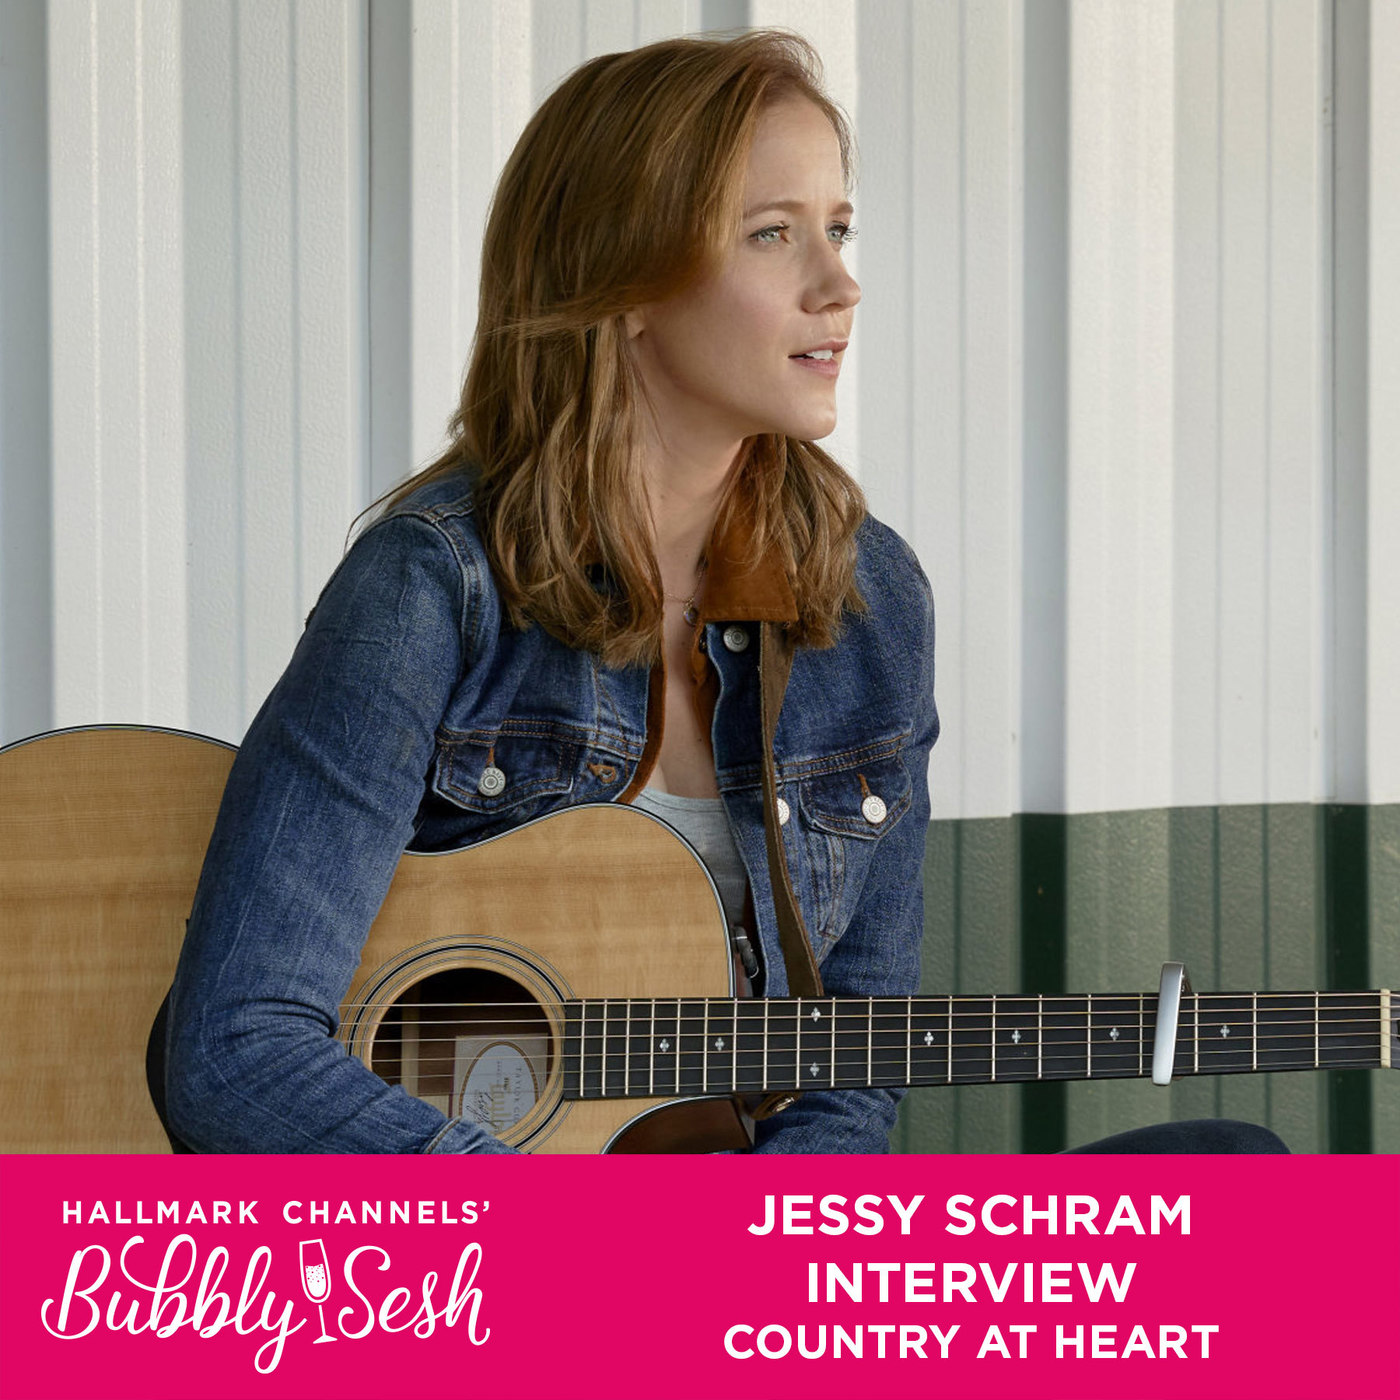 Jessy Schram Interview, Country at Heart